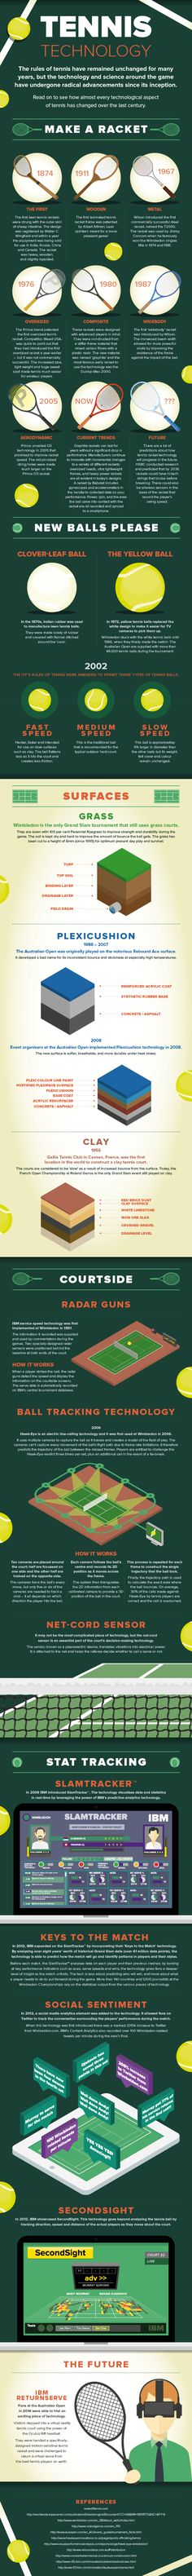 Wimbledon 2014: Everything you've ever needed to know about tennis in one amazing infographic - Mirror Online